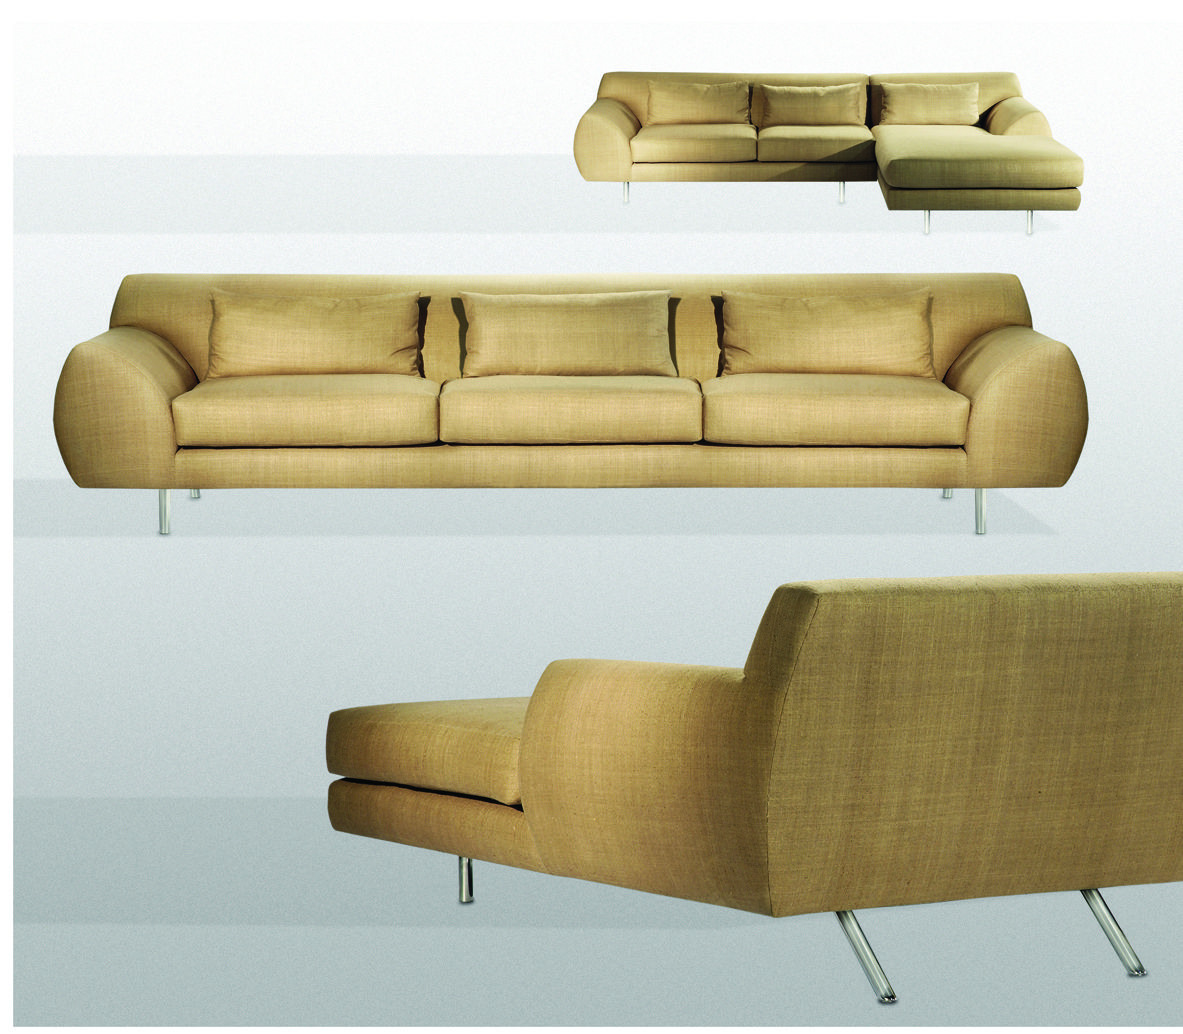 Brueton Arigato The subtle yet precise upholstered lines on this seating series are defined by the shapely arms that wrap around the softly curved exterior body, enveloping the soft, inviting cushioned interior. Supported by polished stainless steel legs, Arigato is available in a multitude of configured sectionals as well as two, three, or four seat sofas and chaise lounge.